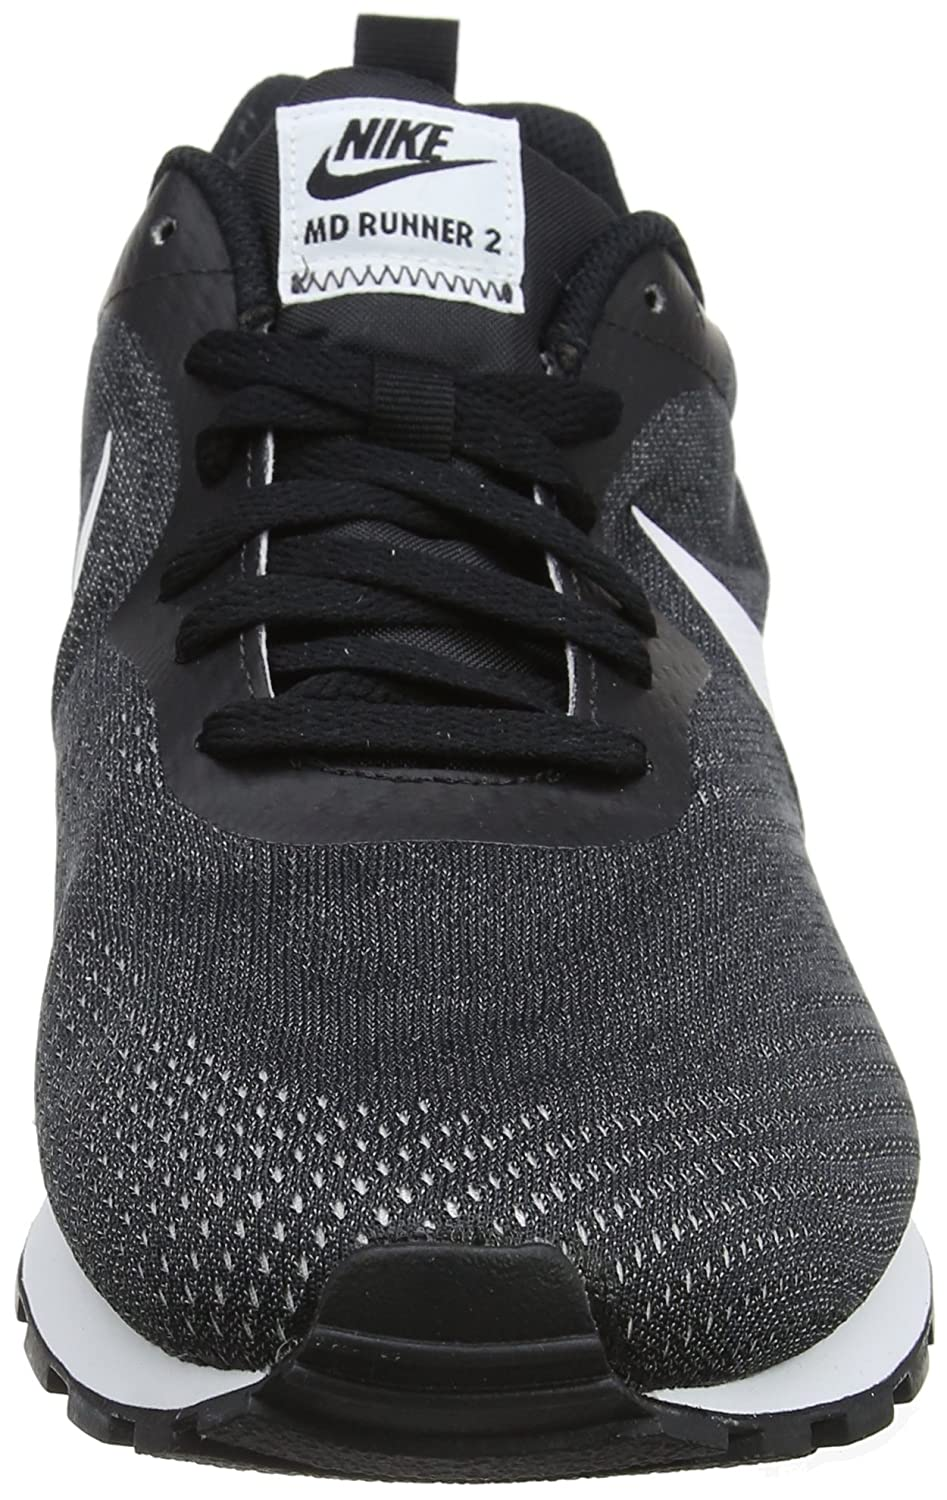 04d05f3f0aeec Nike Nike MD Runner 2 Tight Mesh  Amazon.co.uk  Shoes   Bags